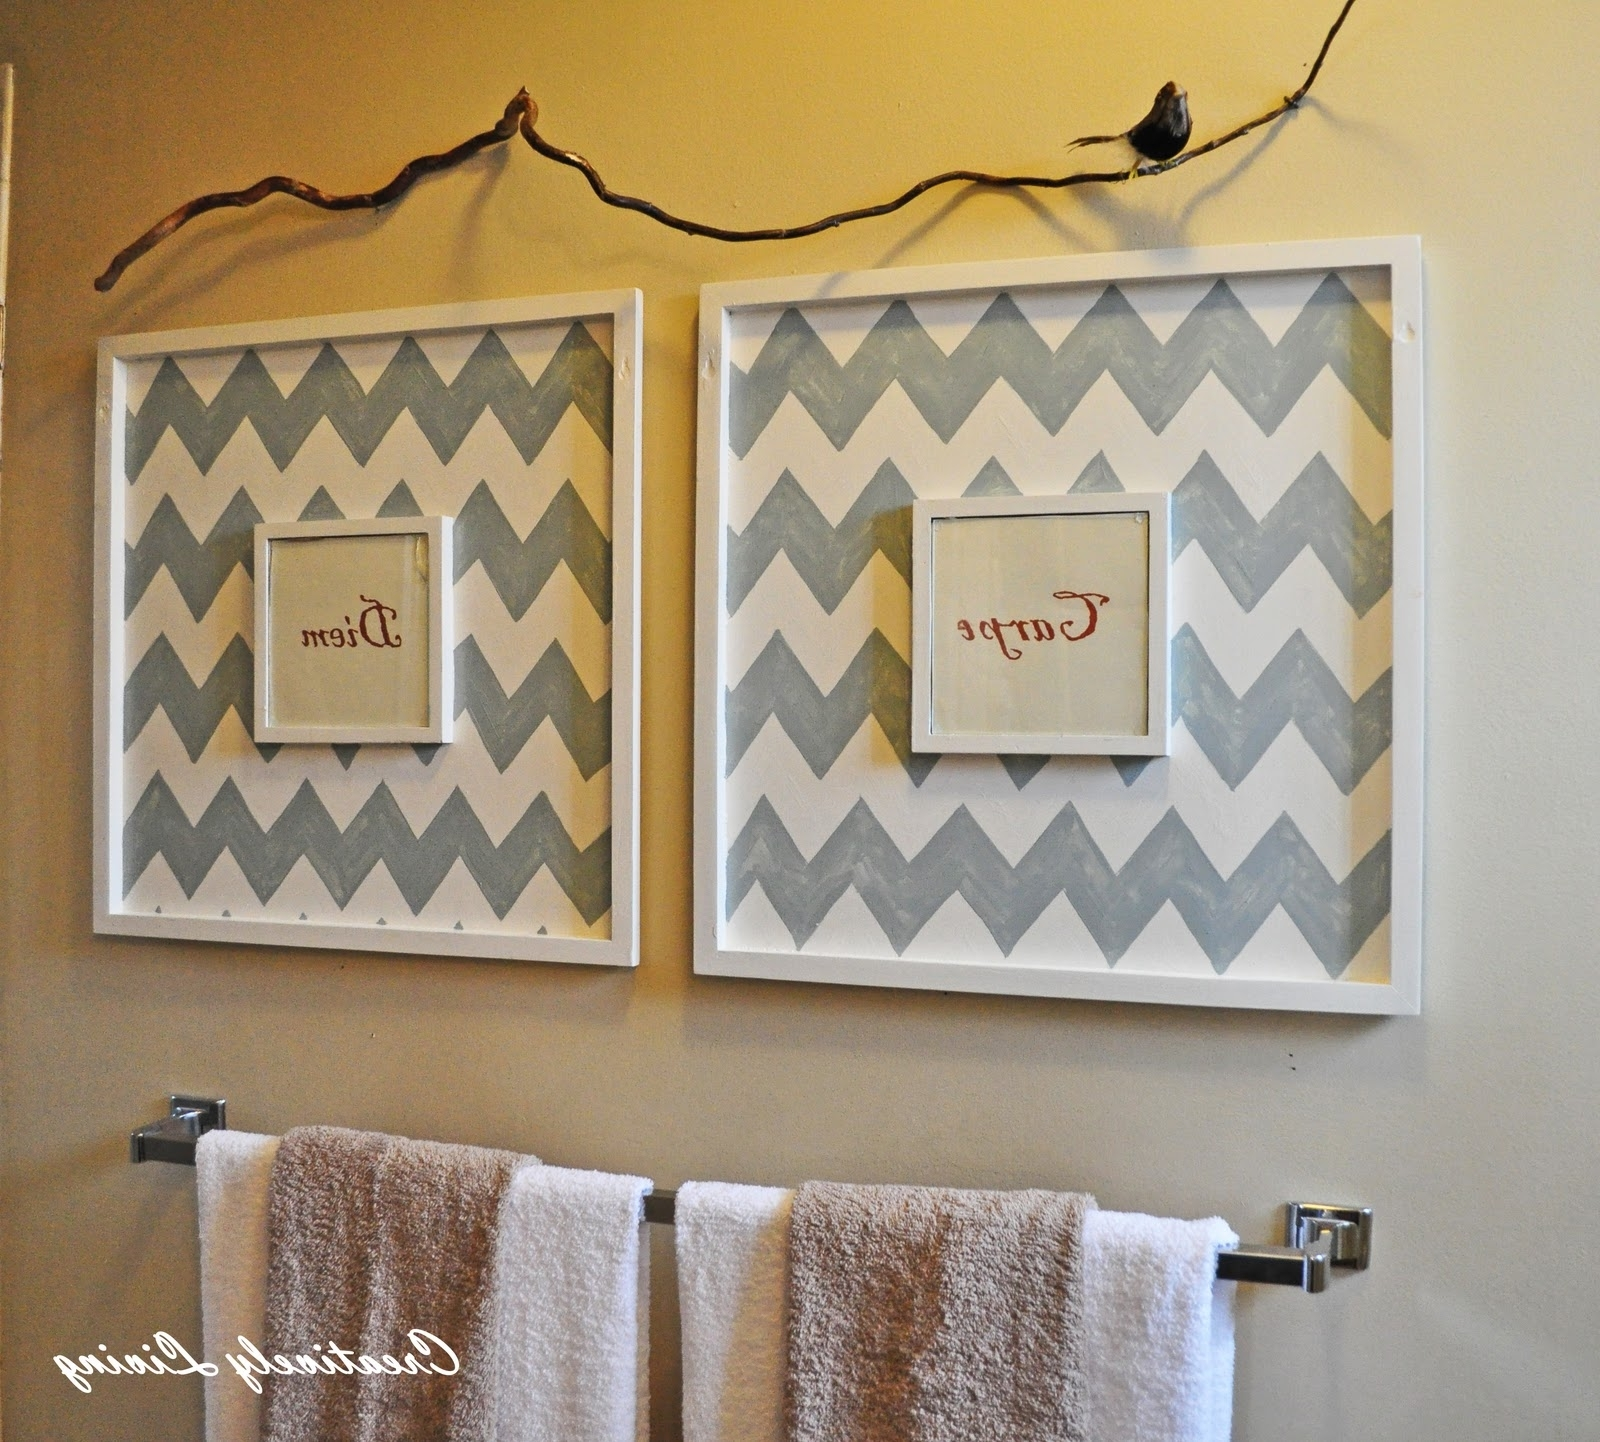 Bathroom Wall Art, Walls And Frames Ideas With Regard To Current Wall Art For The Bathroom (View 9 of 15)